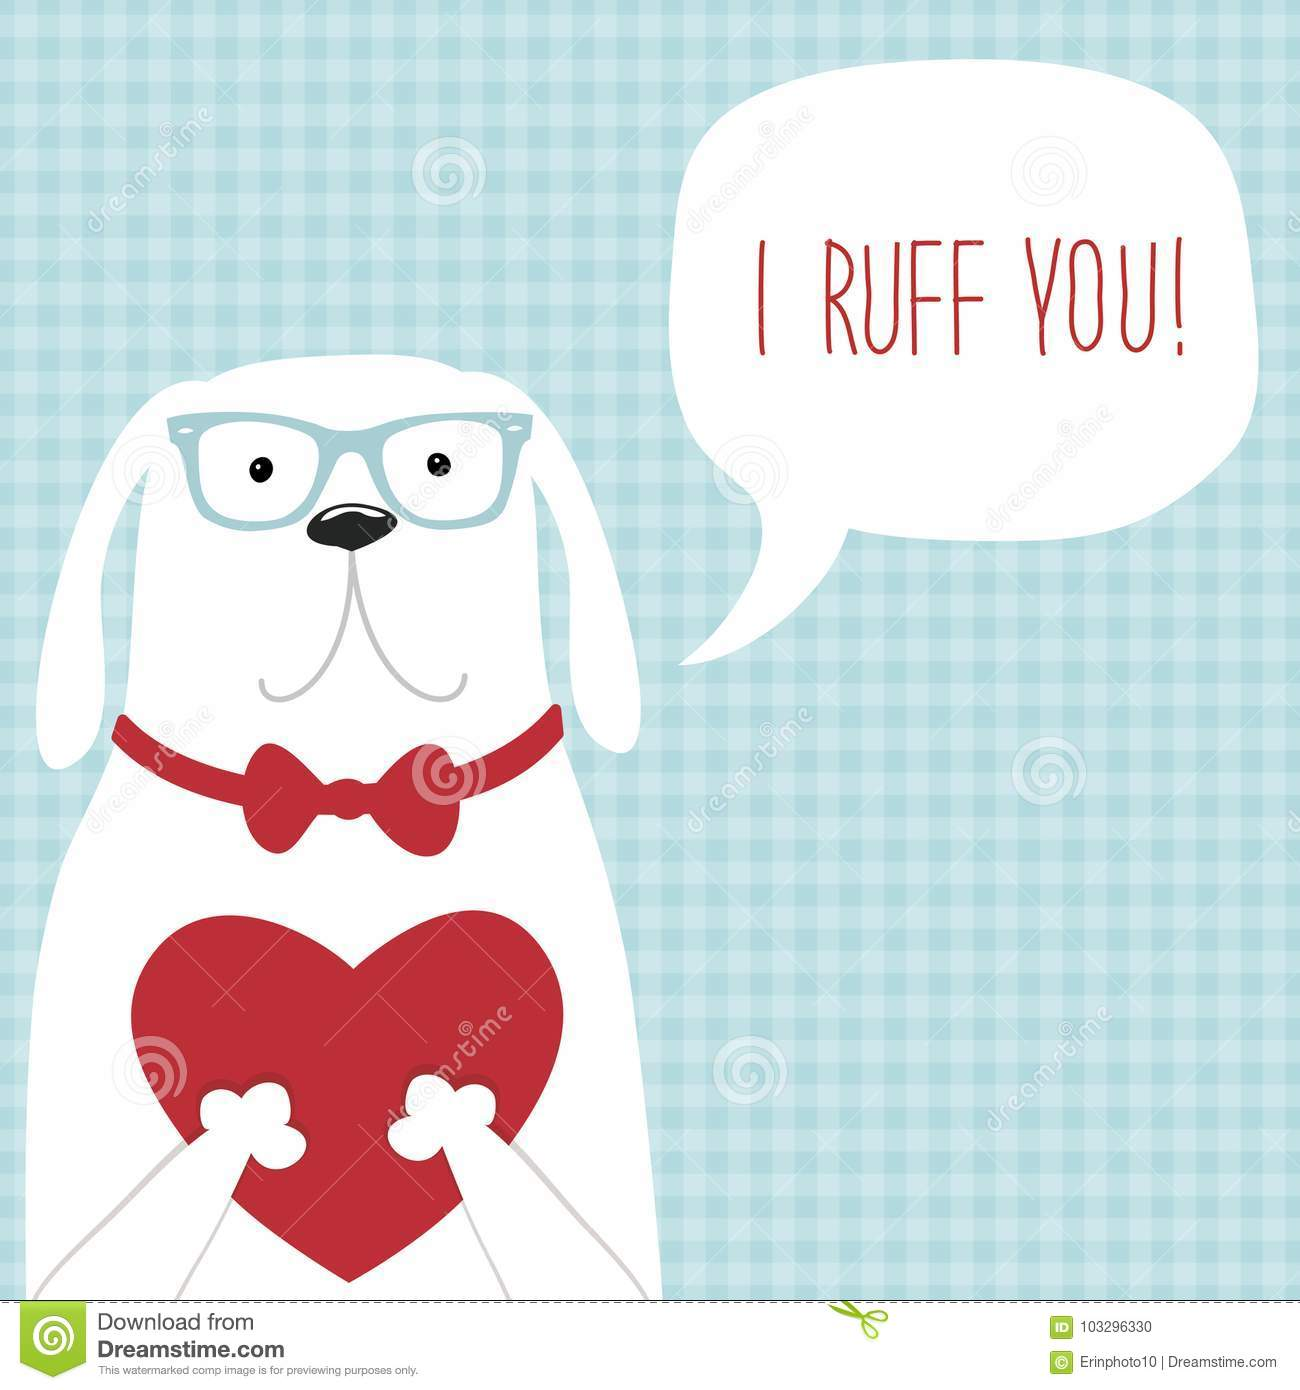 Cute retro hand drawn Valentine`s Day card as funny Dog with Heart and speech bubble